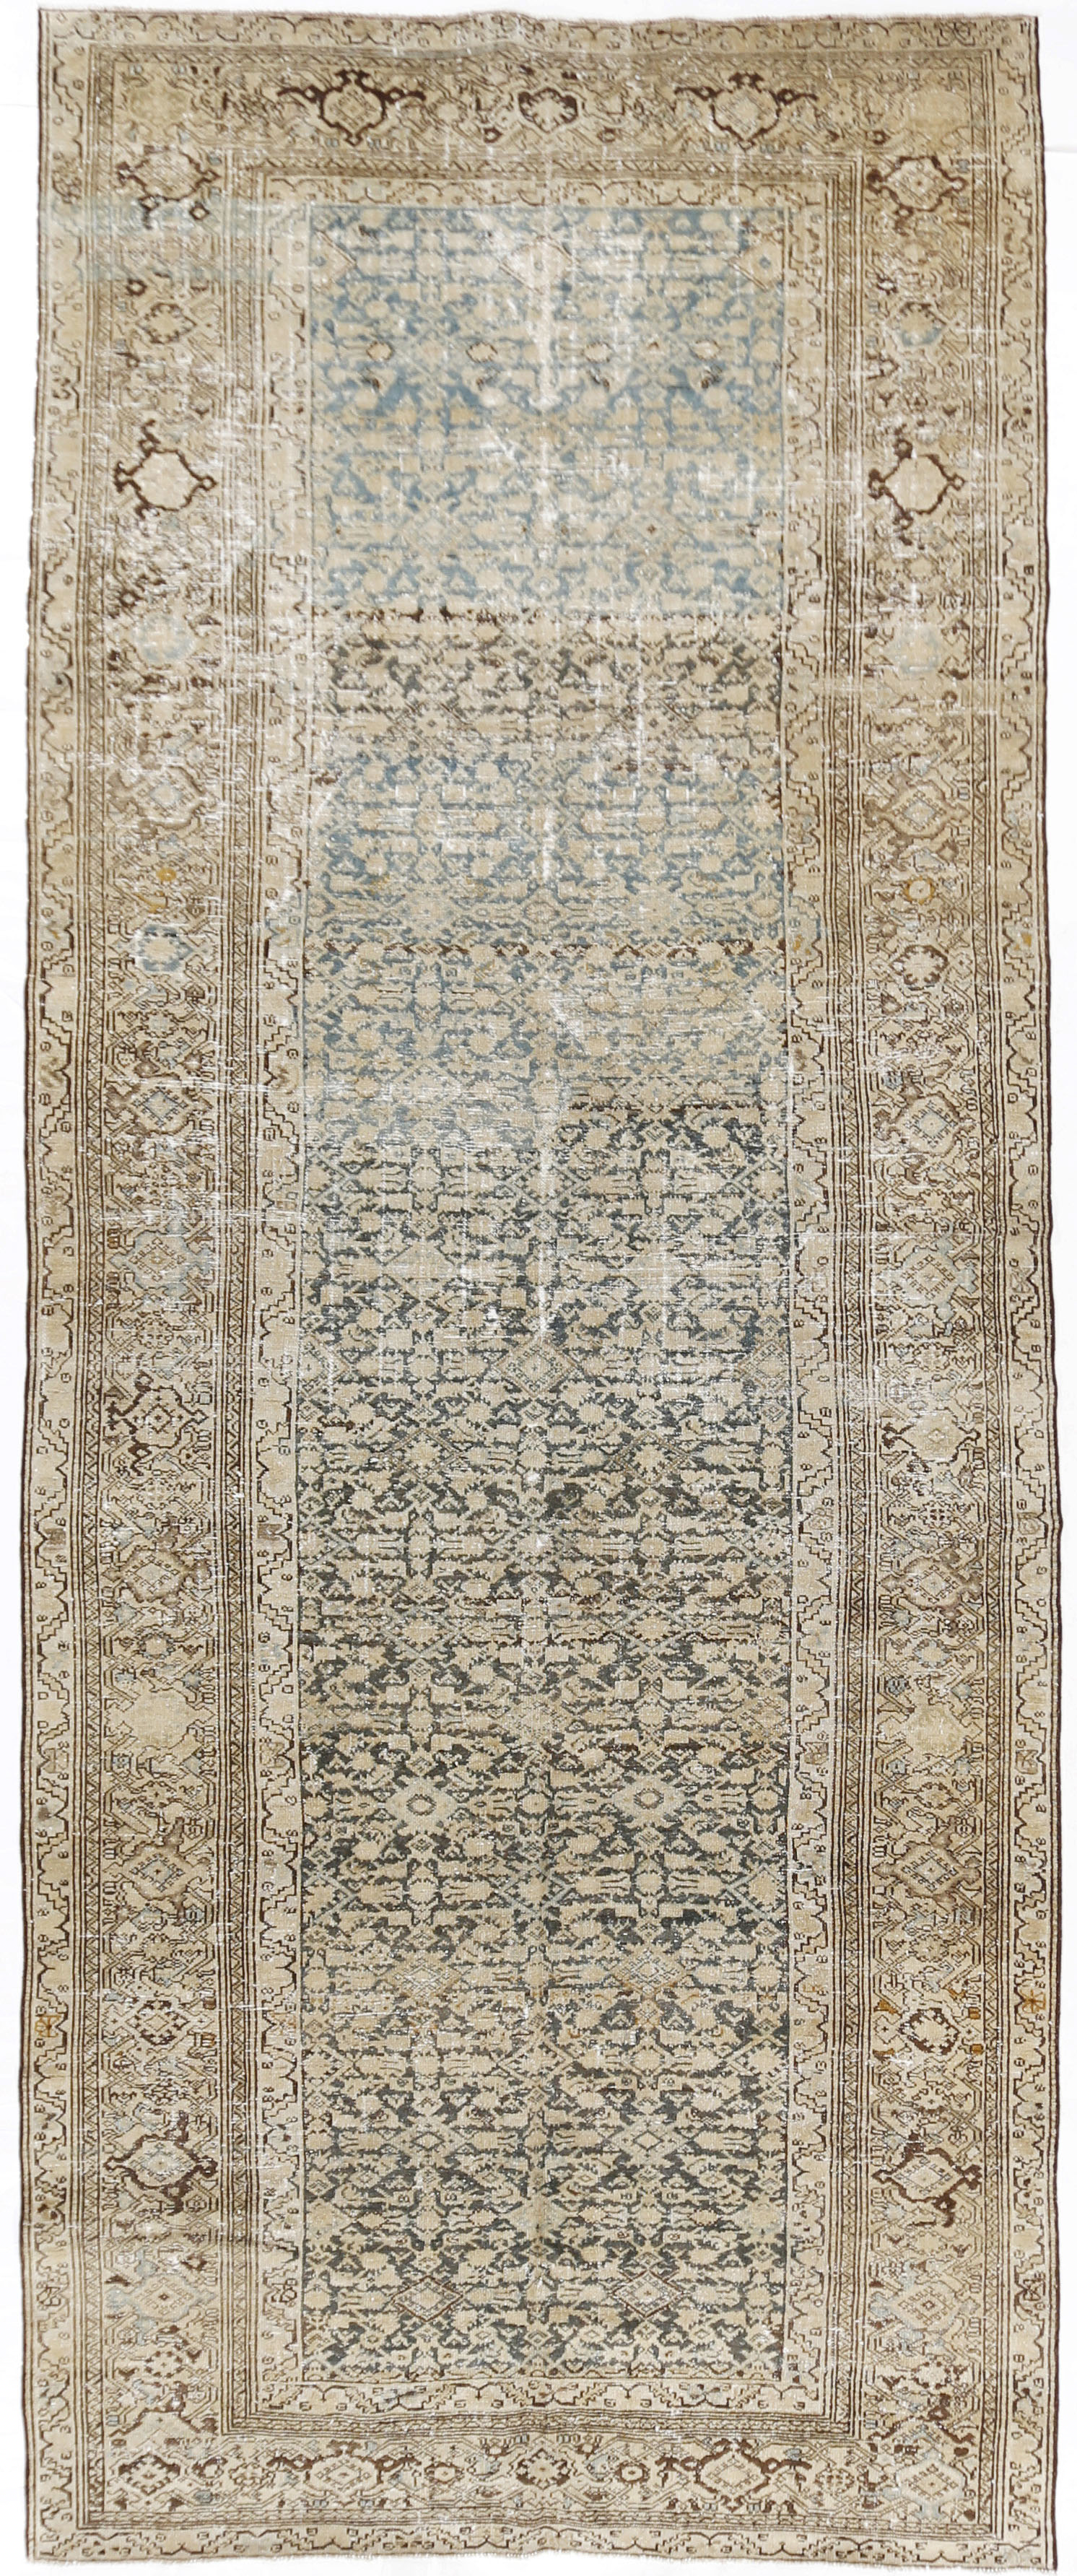 Antique Distressed Persian Malayer Rug